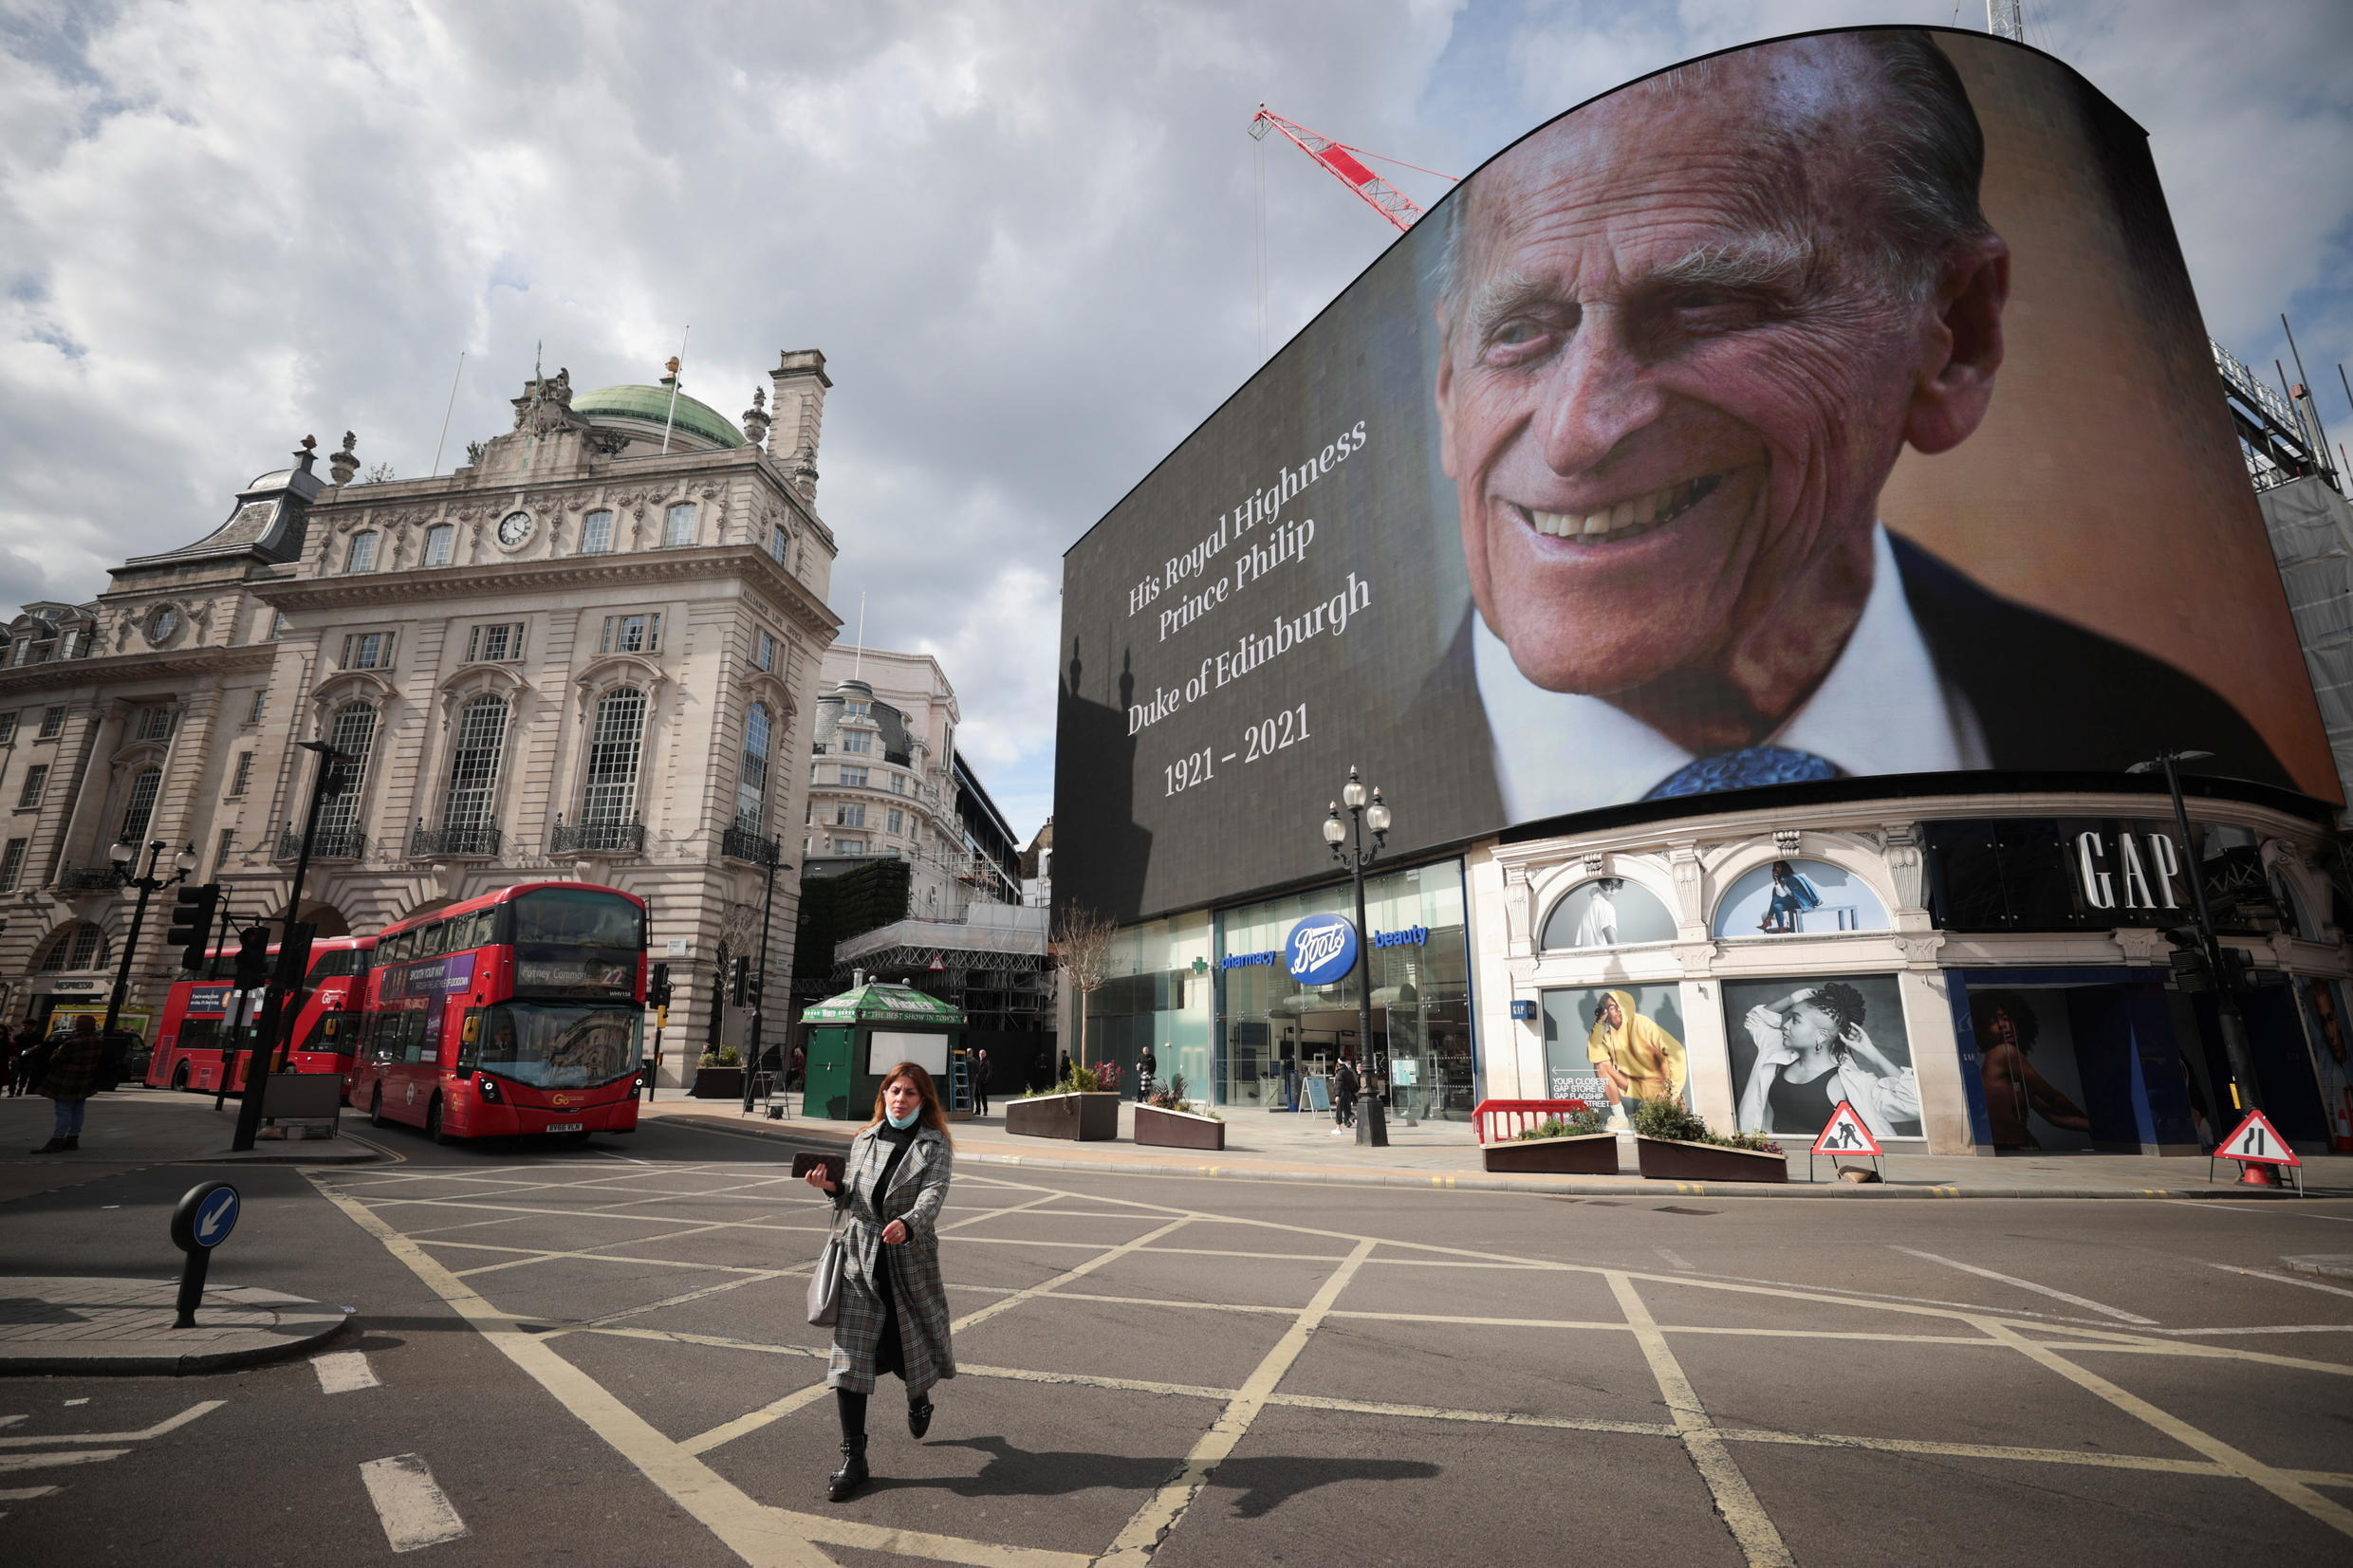 PRINCE PHILIP FUNERAL ANNOUNCEMENT